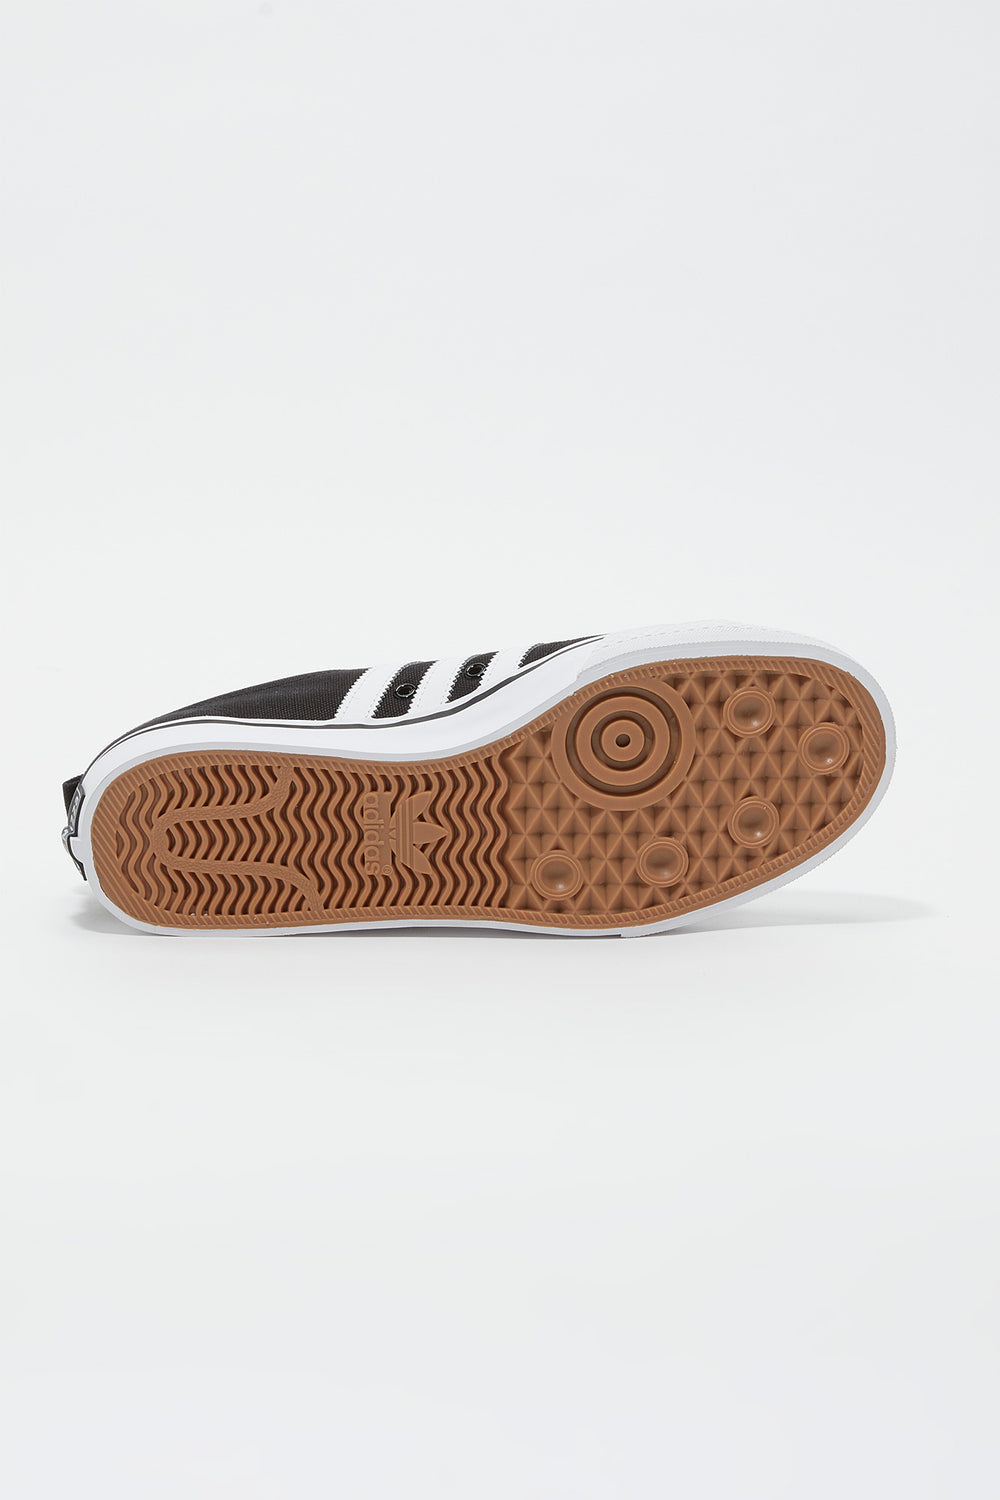 Adidas Mens Nizza Shoes Black with White